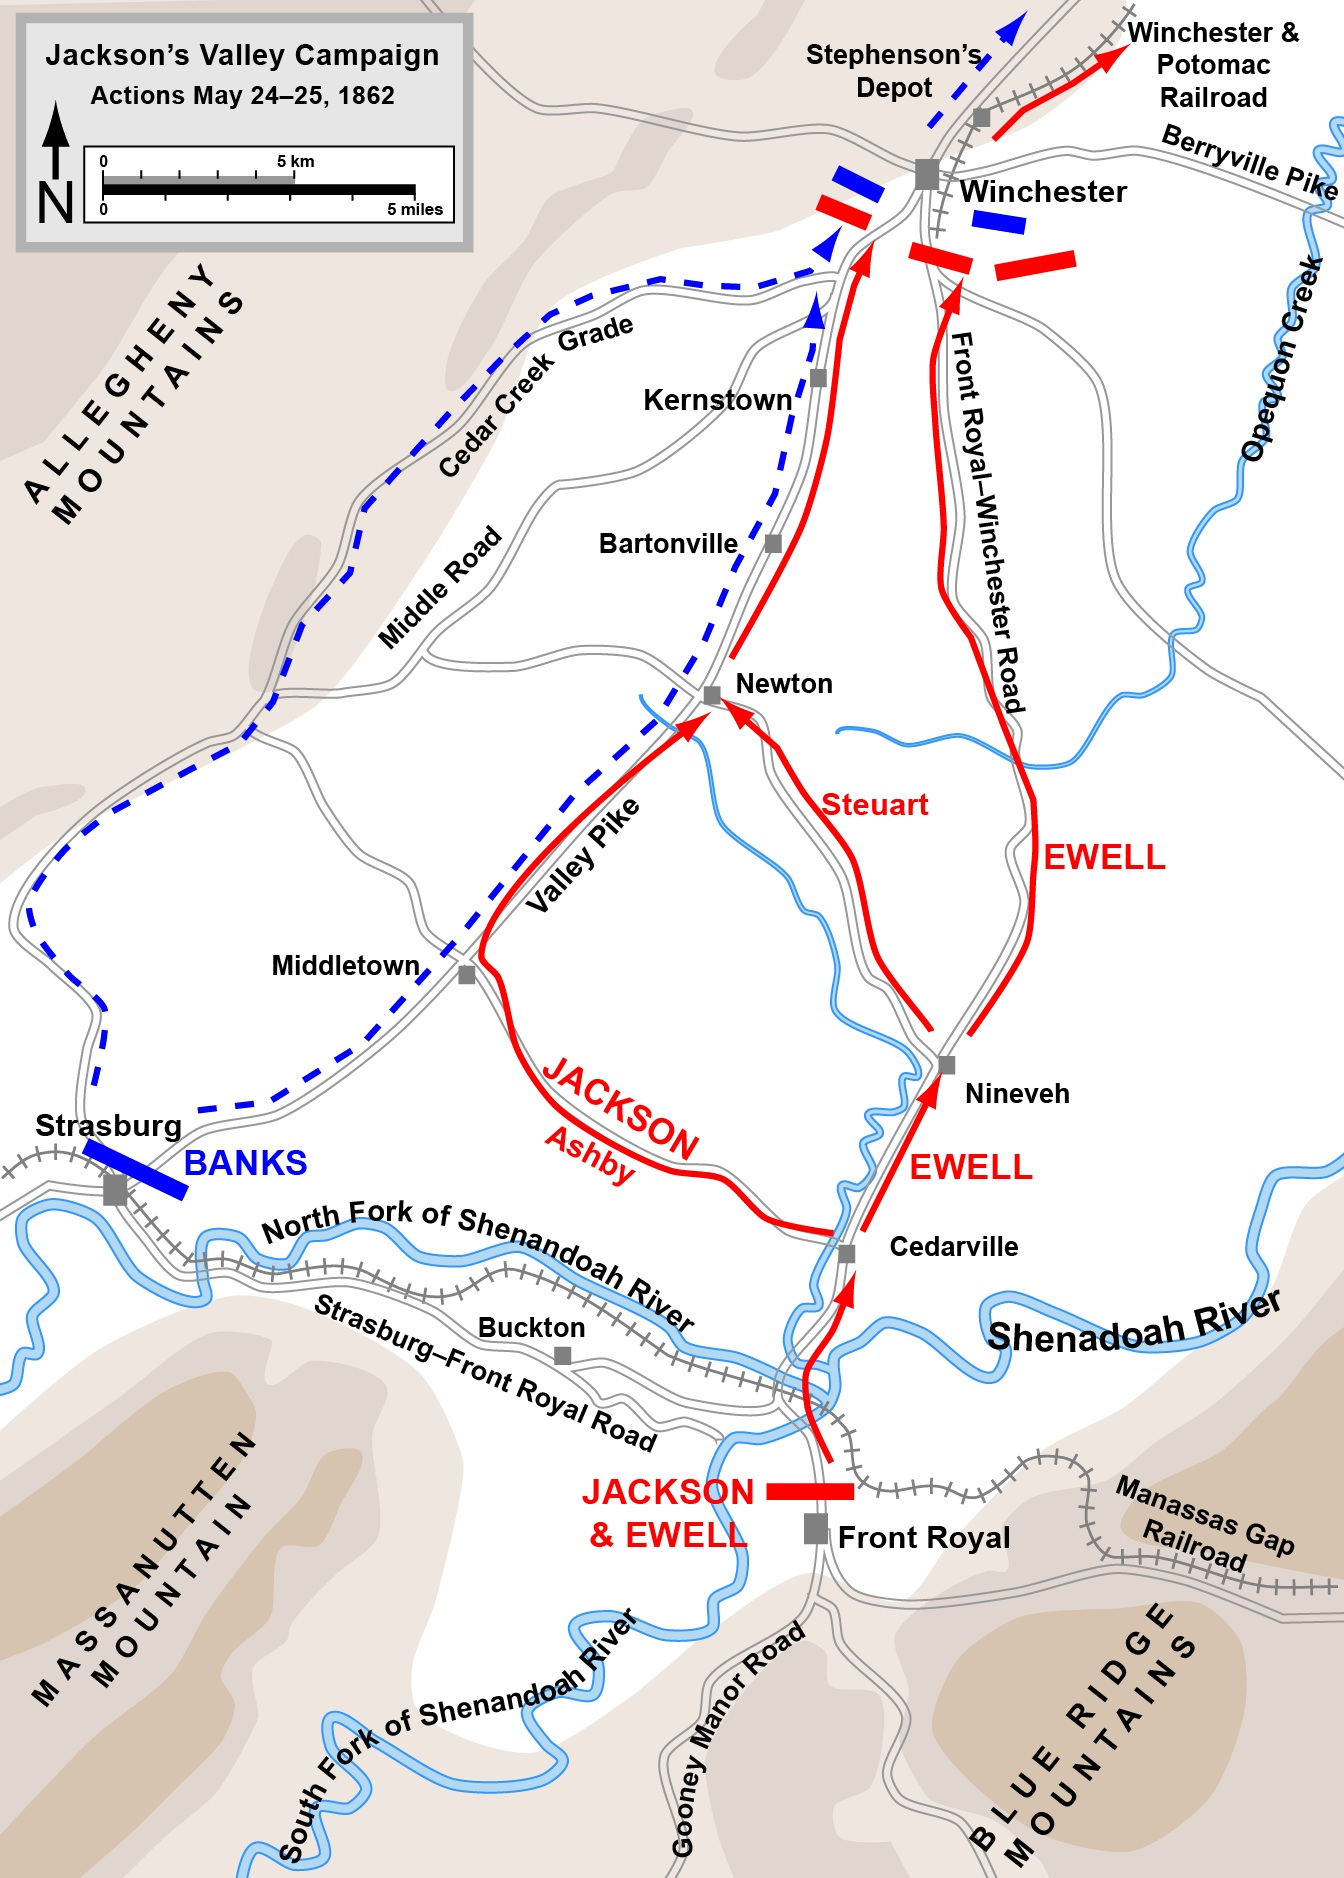 First Battle of Winchester Civil War Map.jpg